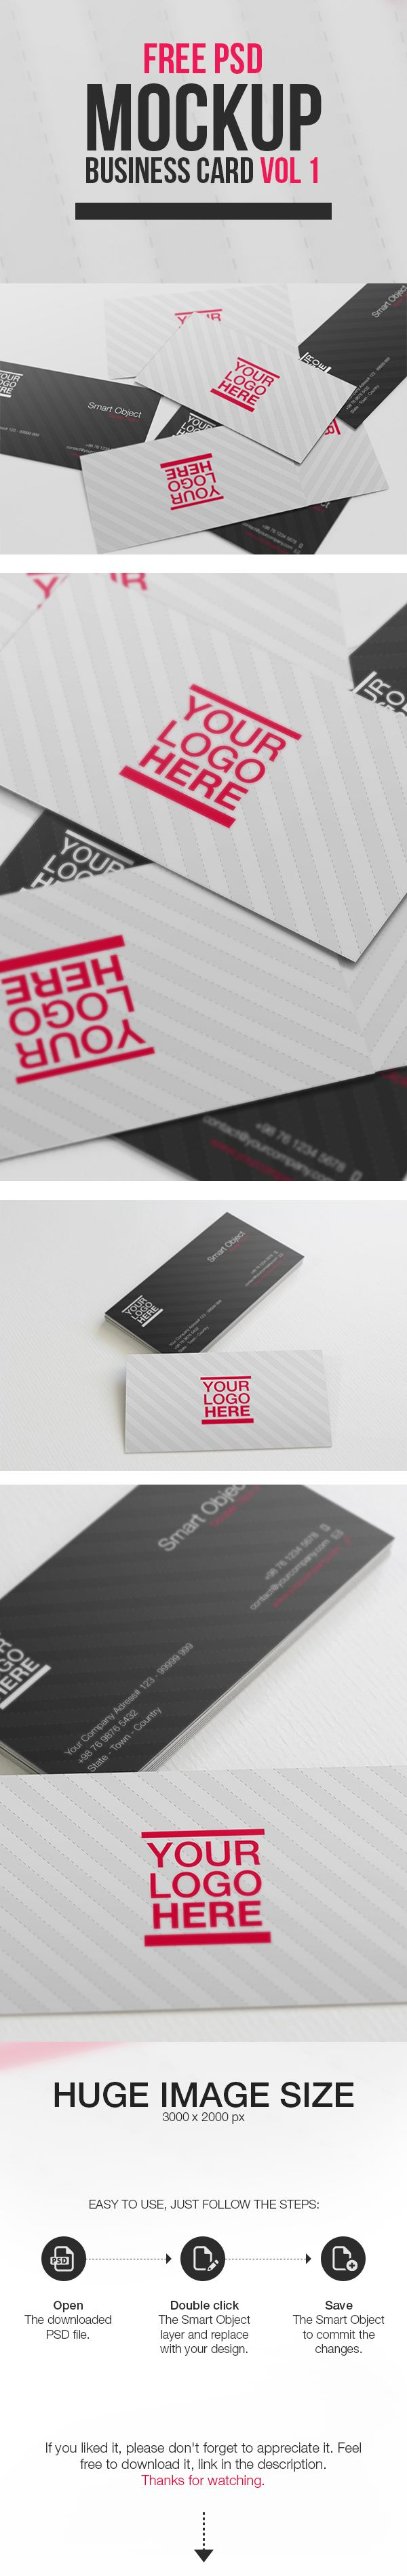 Free PSD Mockup - Business Card Vol 1 on Behance